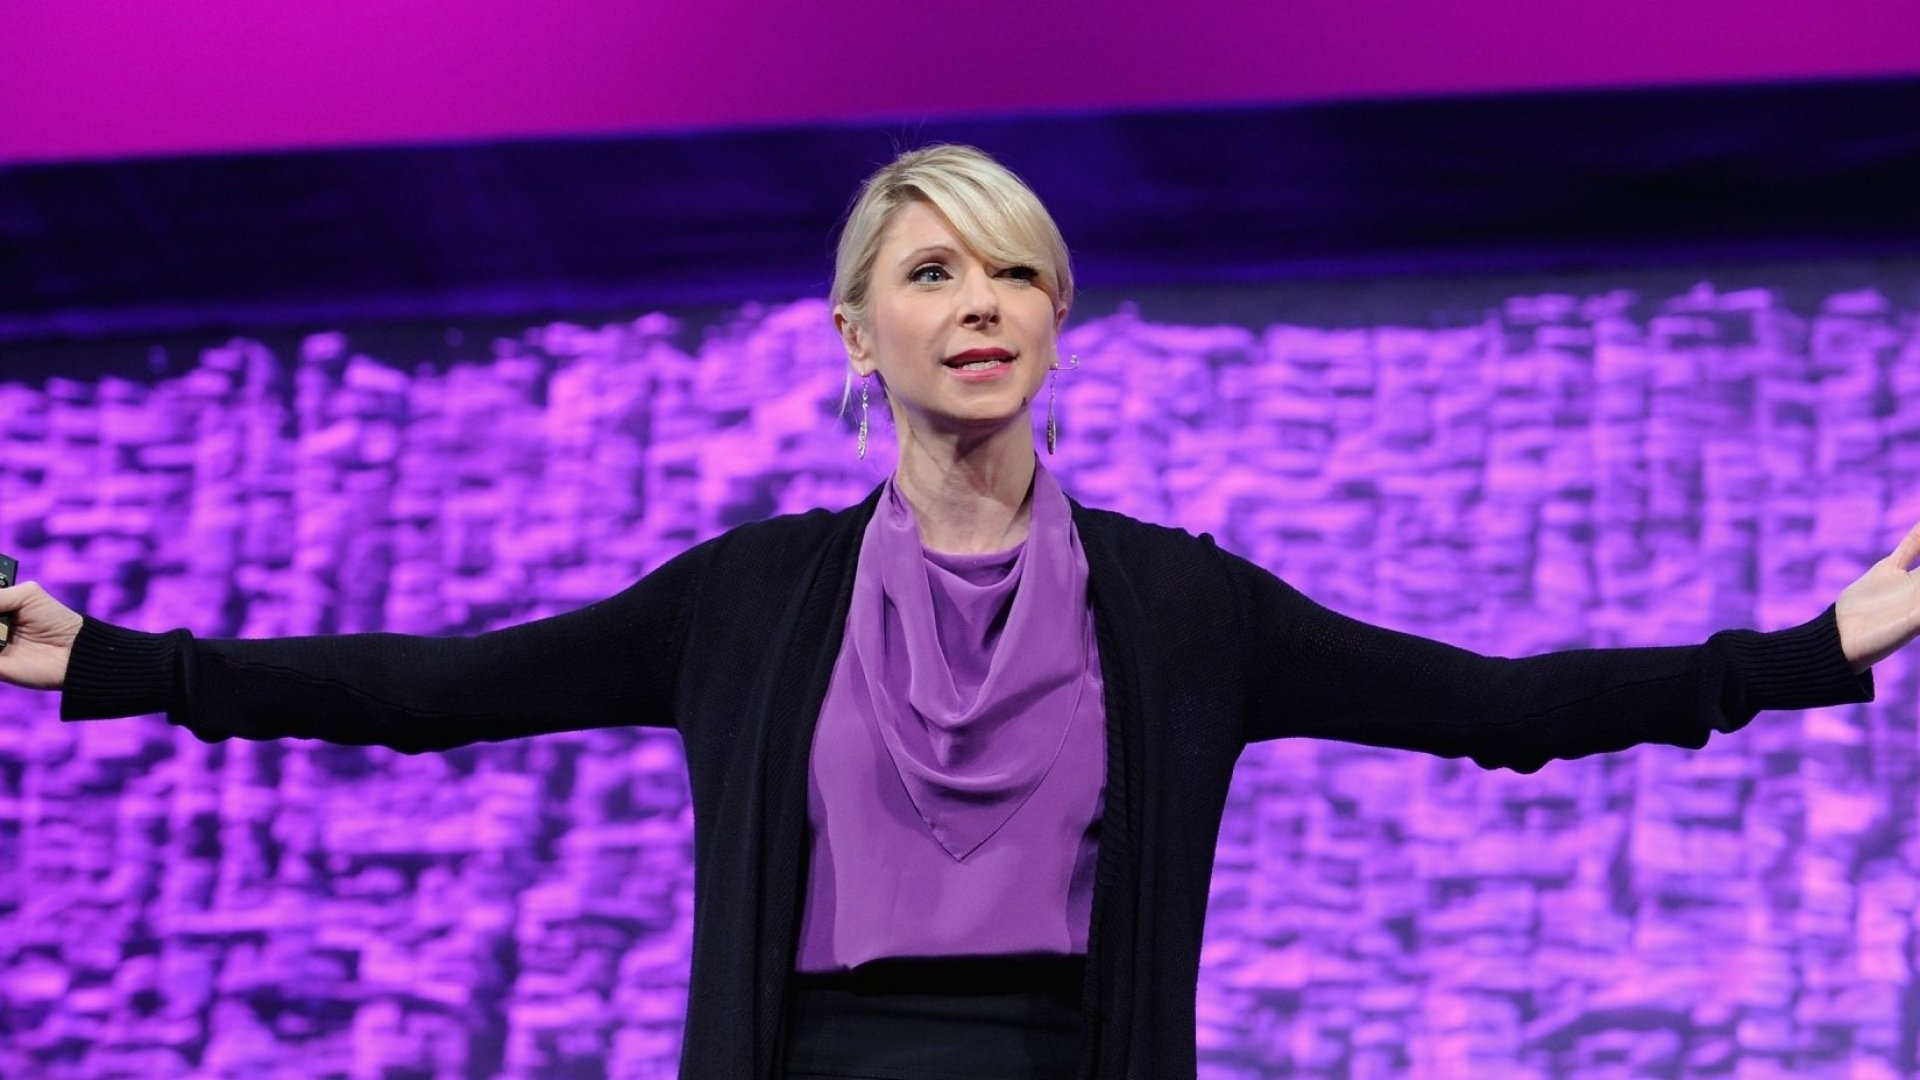 Amy Cuddy's Body Language Research Has Been Disproved. Here's What to Do Now